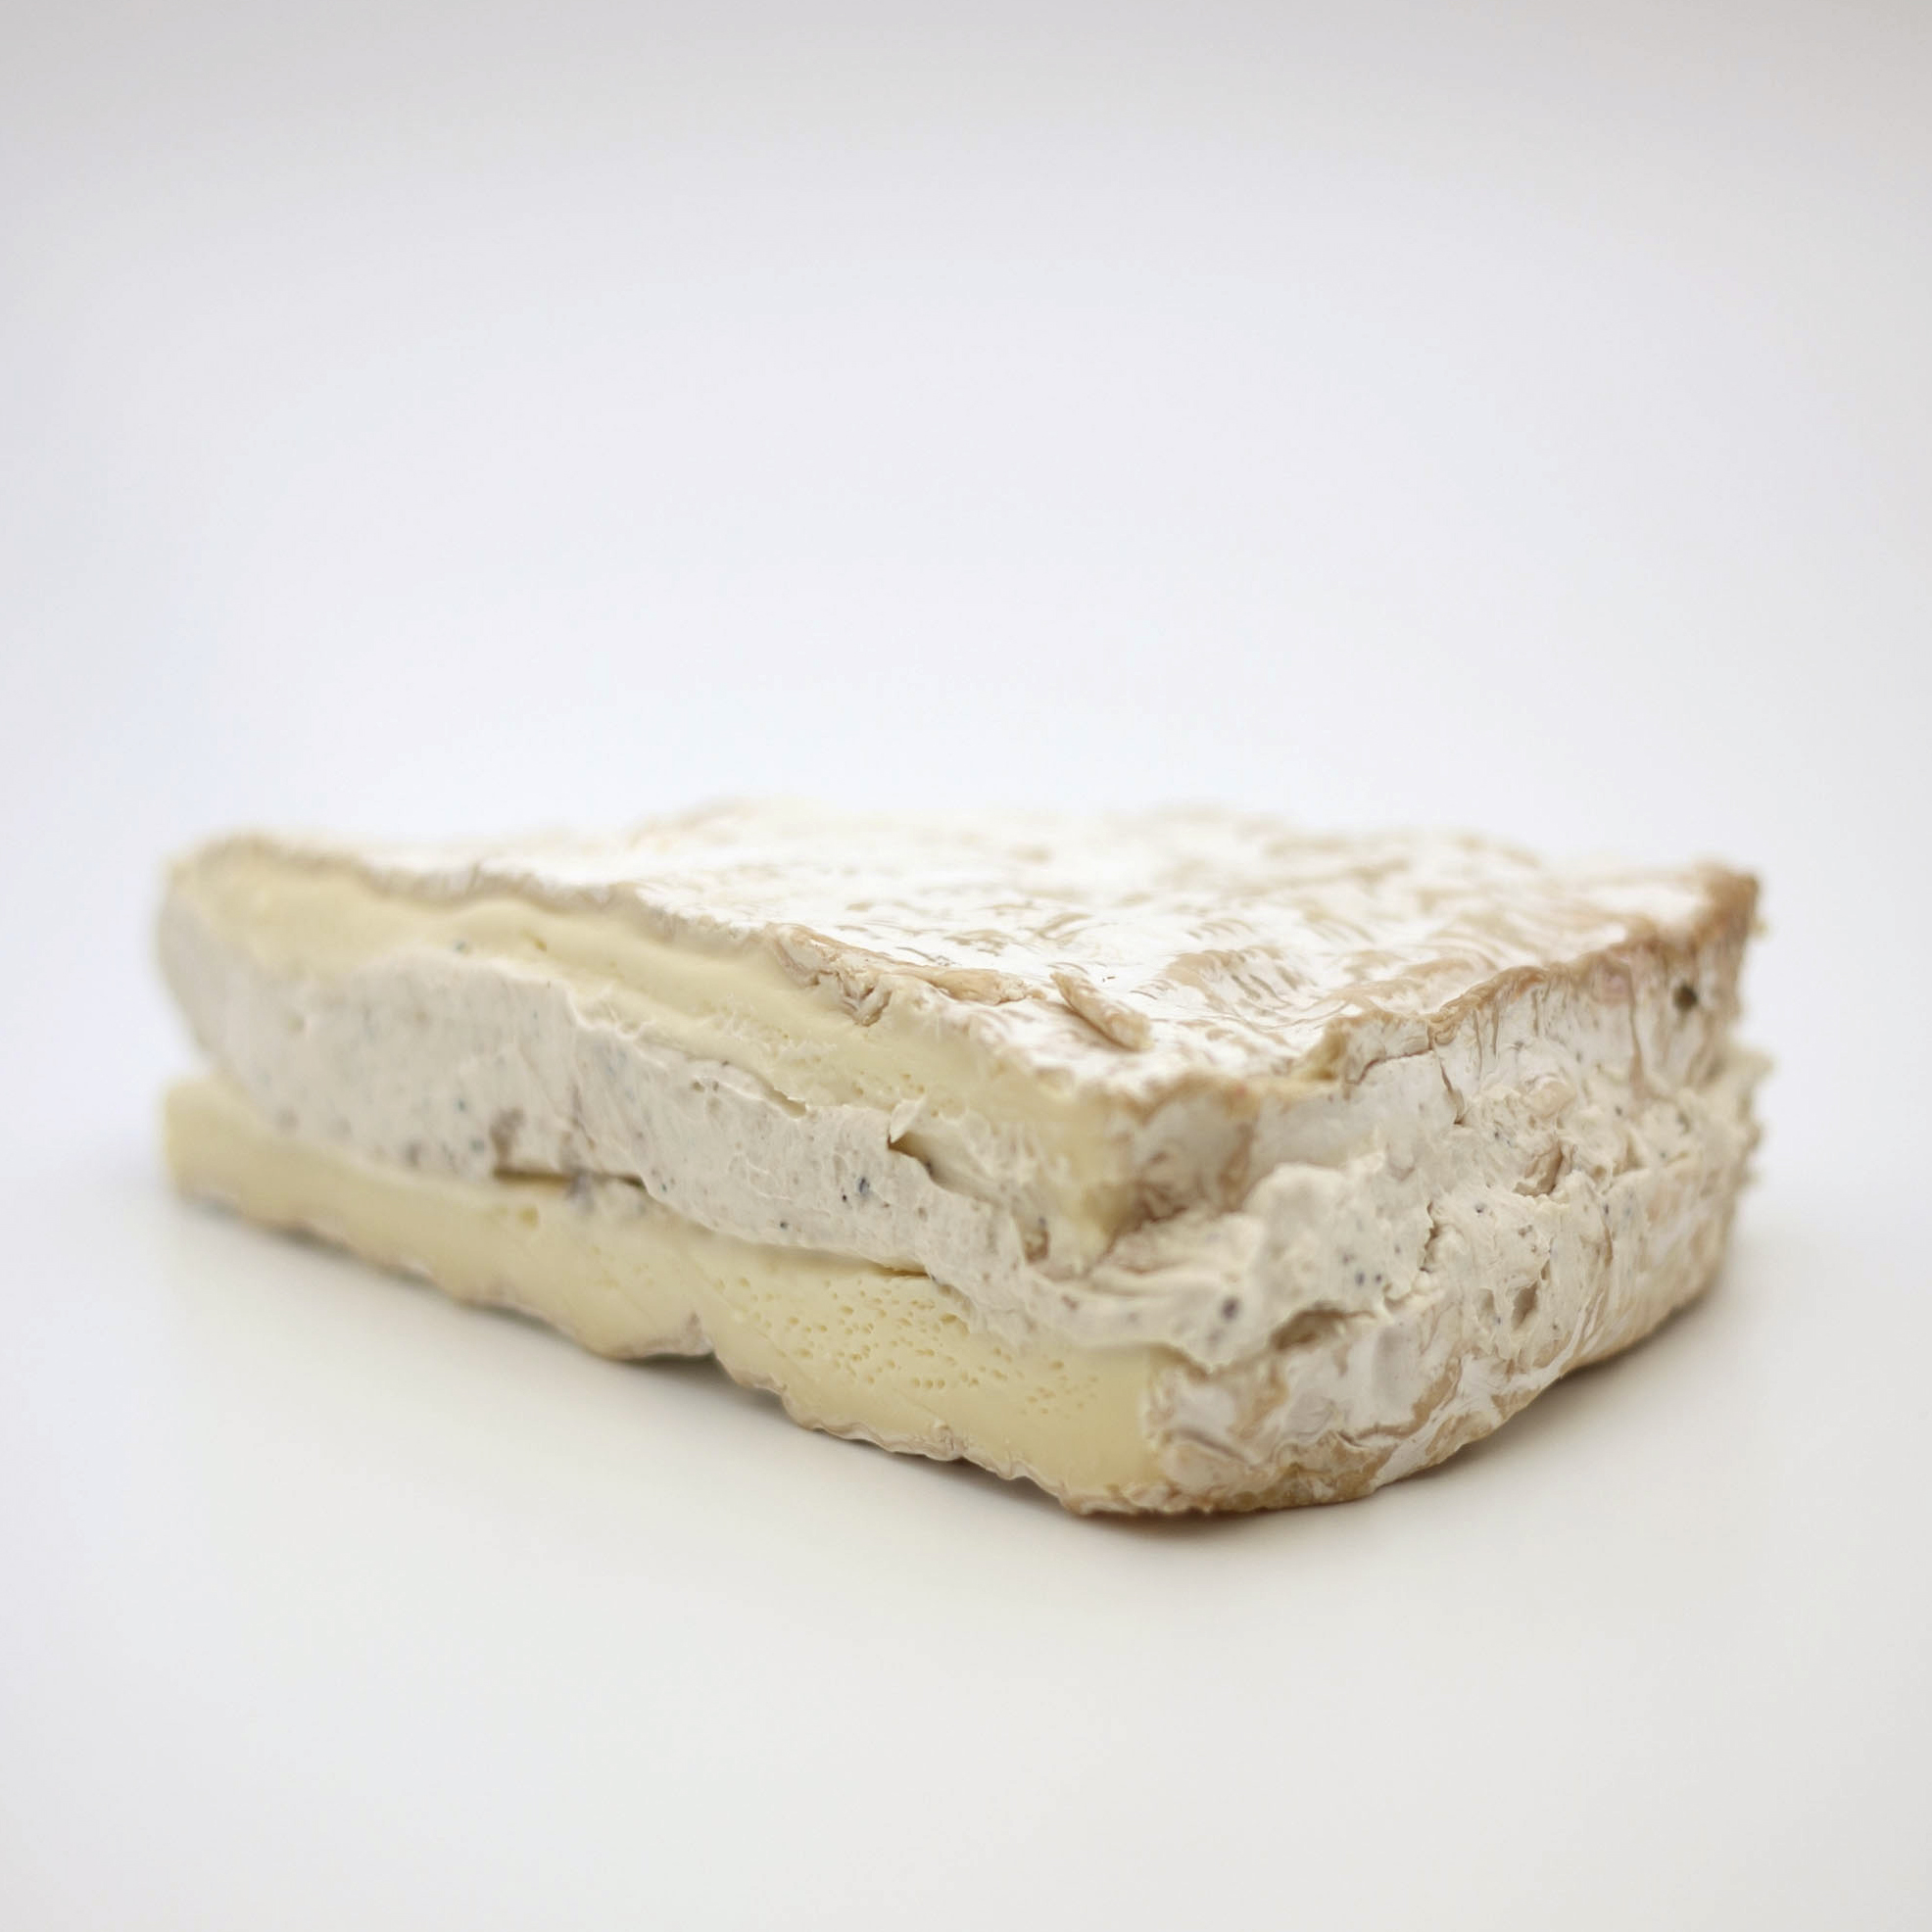 Day 5: Brie aux Truffes